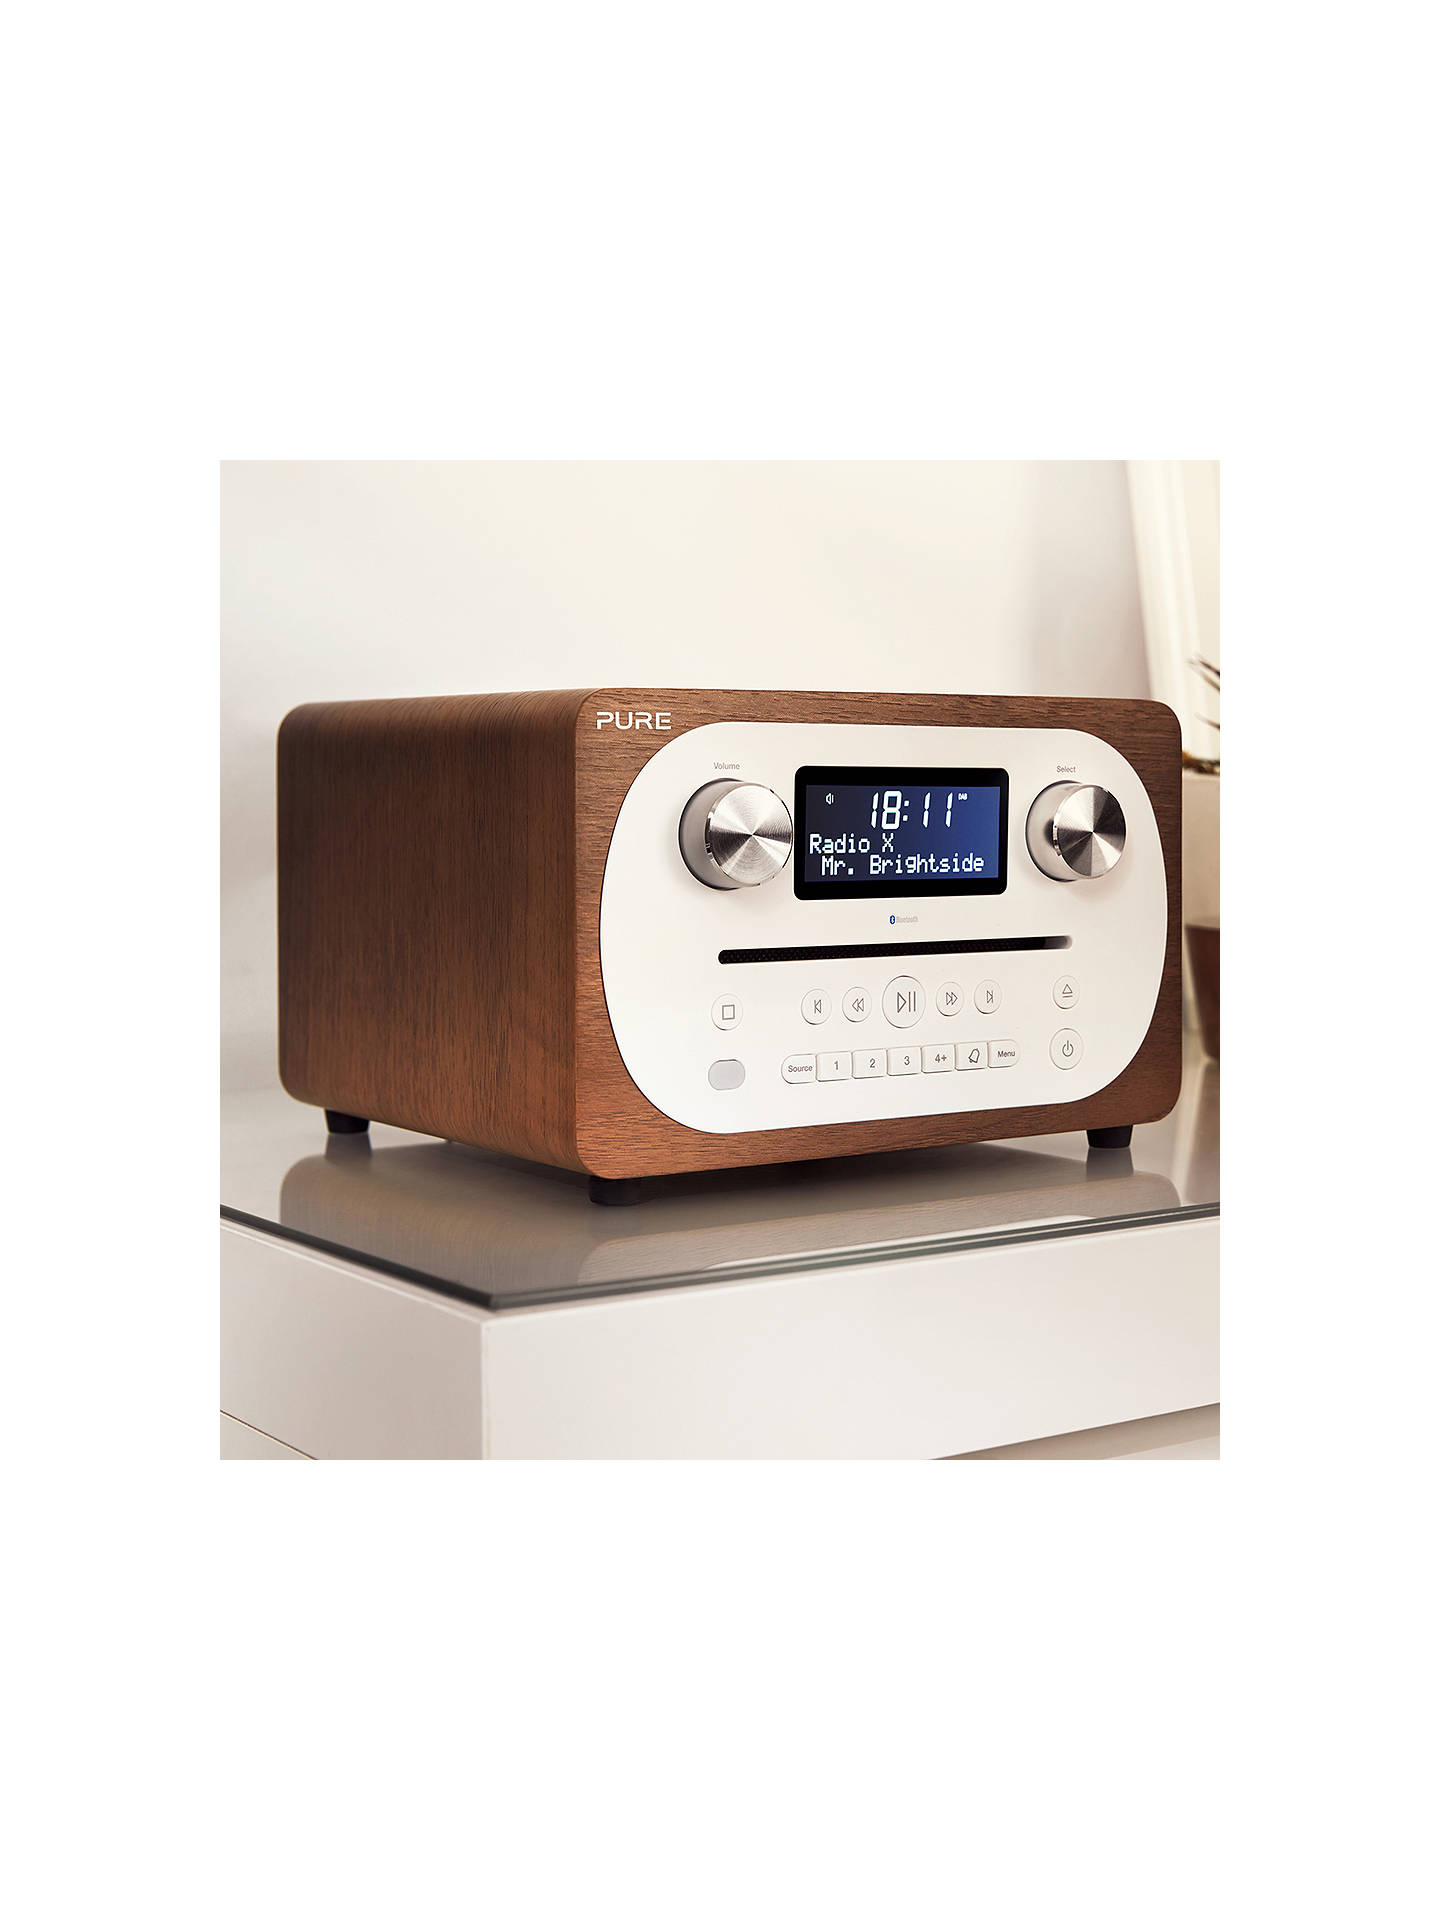 BuyPure Evoke C-D4 DAB+/FM Bluetooth Compact All-In-One Music System With Remote Control, Walnut Online at johnlewis.com